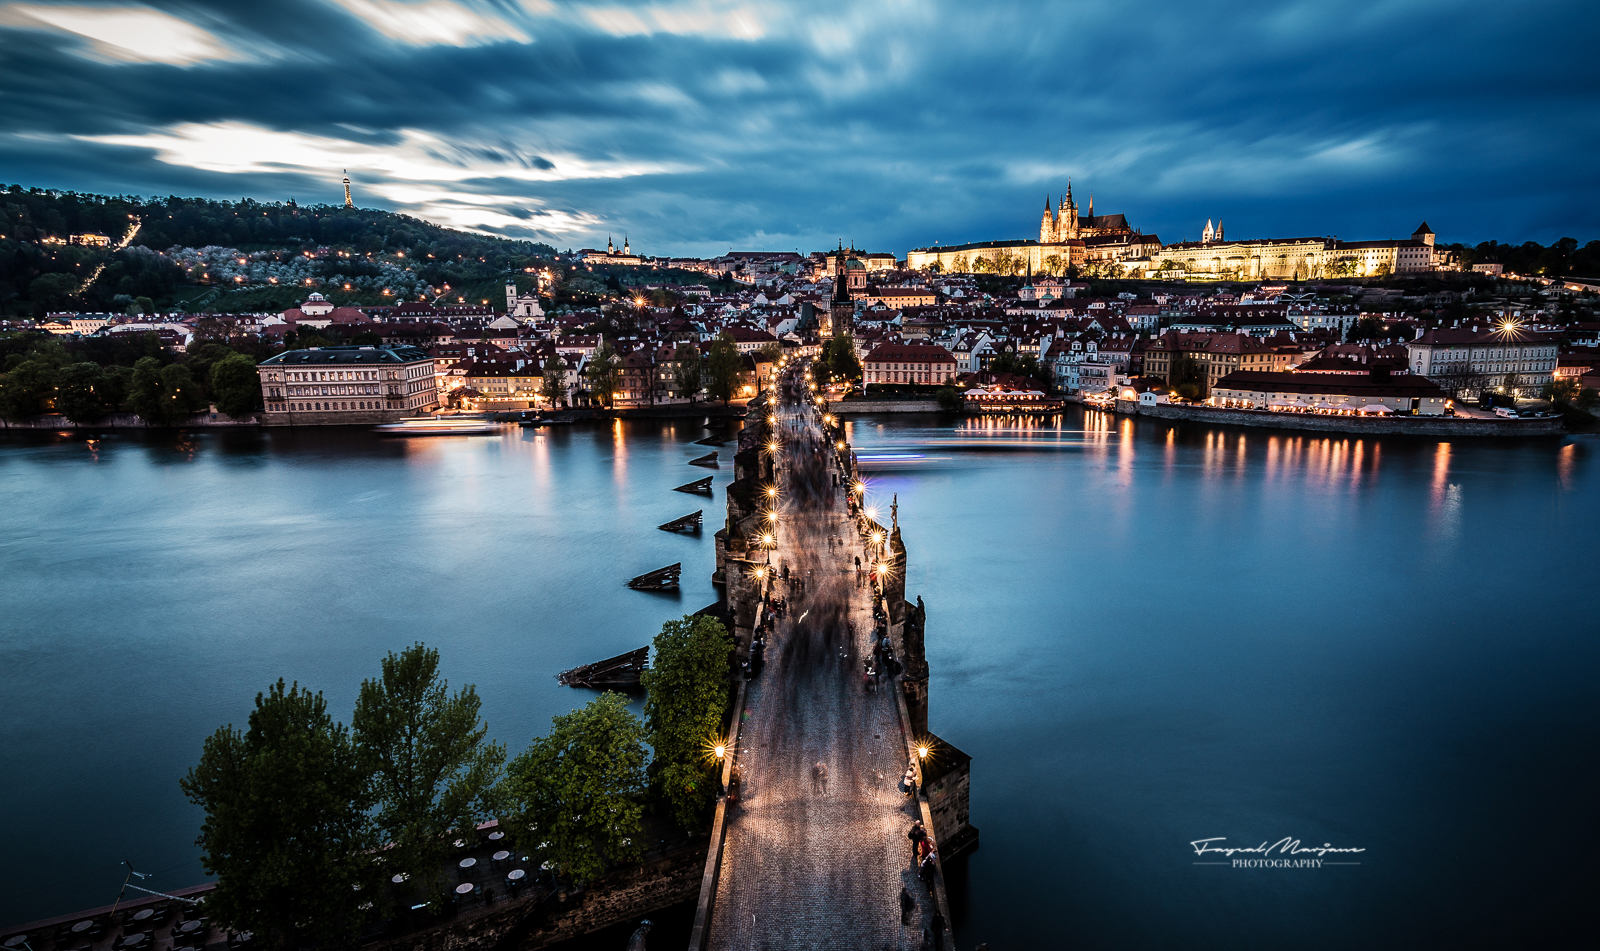 Charles Bridge Tower, Czech Republic